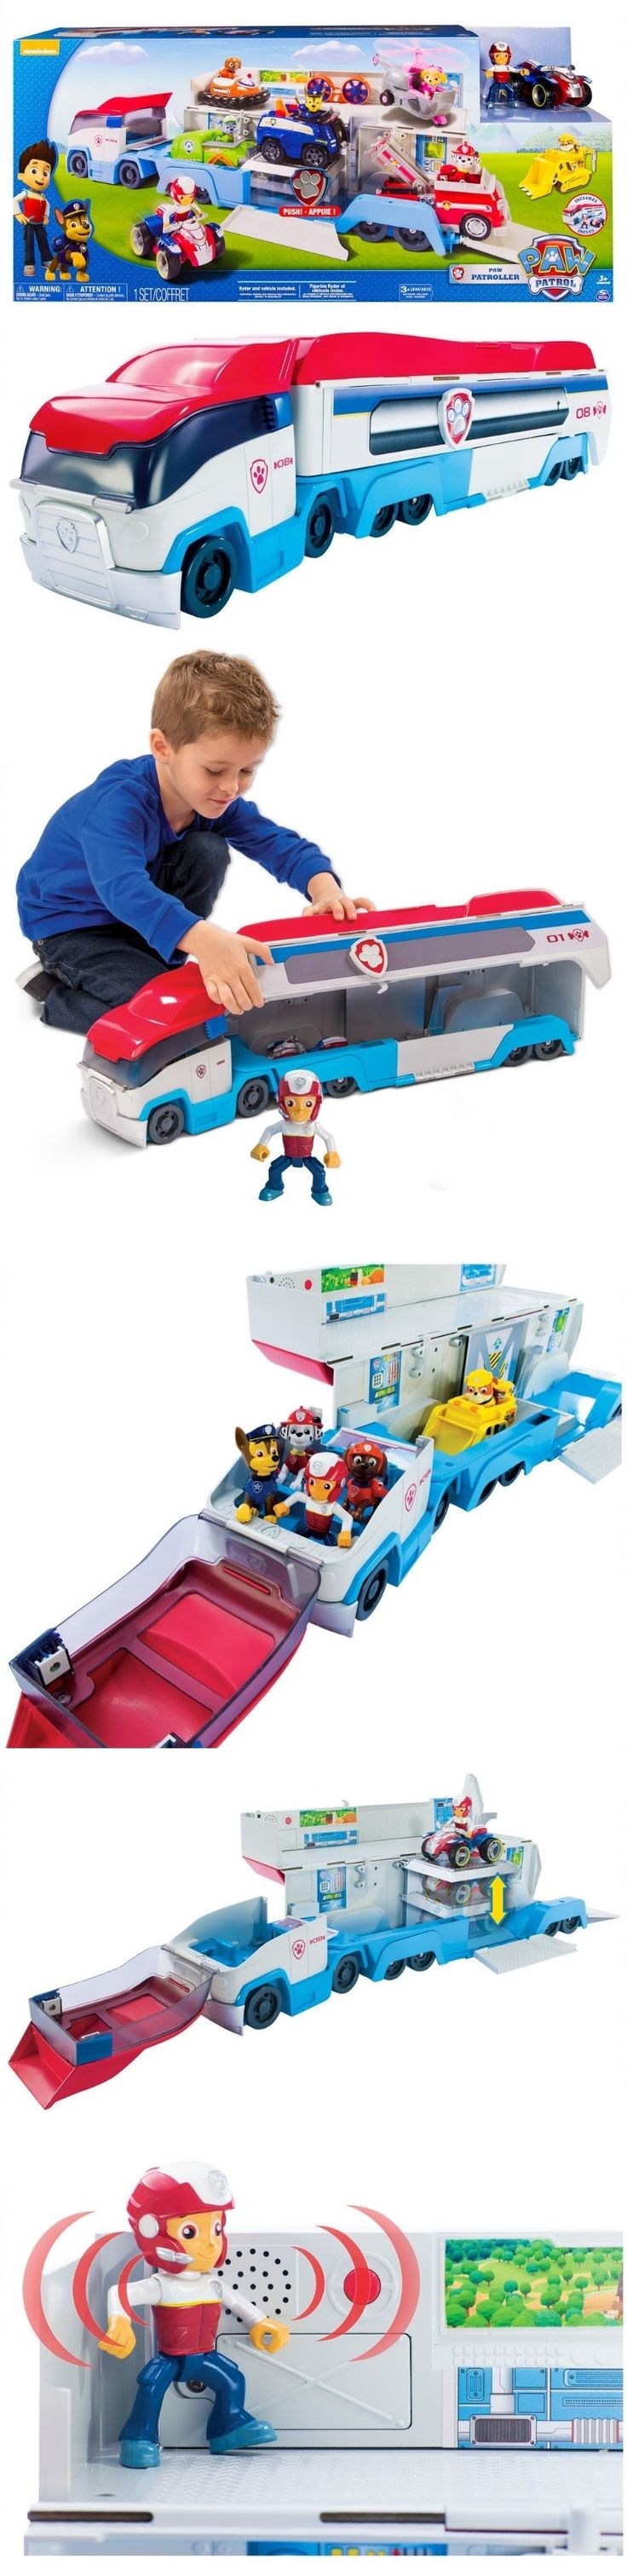 Christmas 2016 for our granddaughter and grandson. The Paw Patroller is the ultimate rescue vehicle the Paw Patrol team uses to  get to exotic adventure locations. The Paw Patroller comes with Ryder and his ATV vehicle and can hold 3 Paw Patrol vehicles inside and can display 6 vehicles when open. Your patrolling will be just like the show when you hear the Paw Patroller's authentic Paw Patrol sounds.  (Three LR44 batteries)